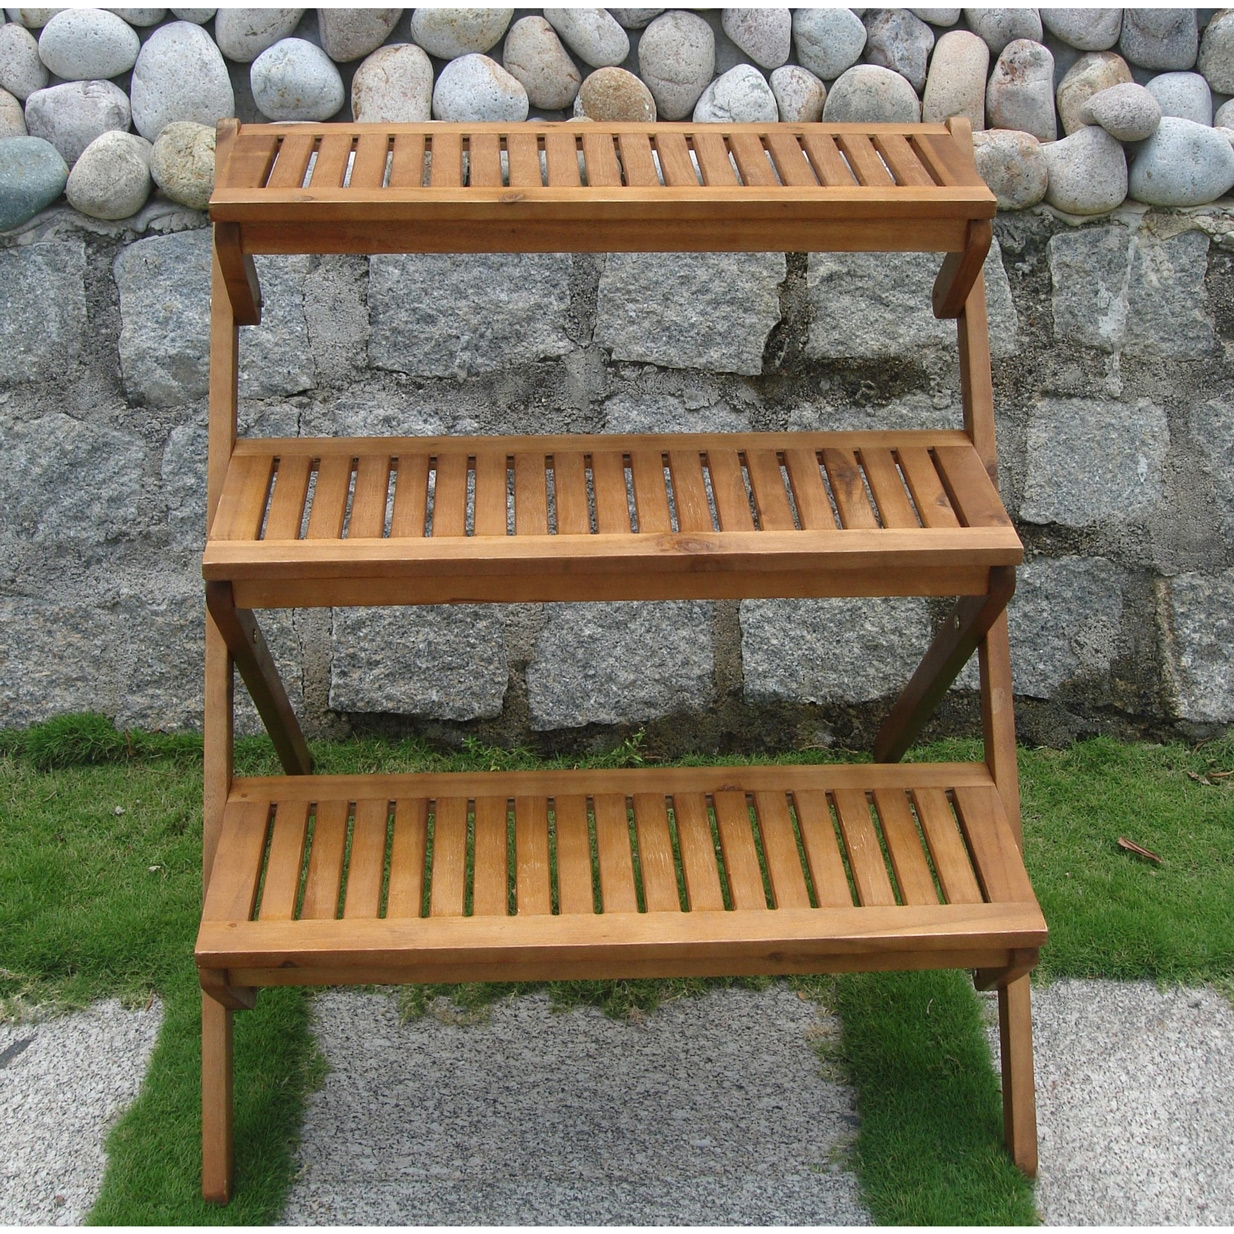 3-Tier Planter Stand in Teak Wood for Outdoor or Indoor Use, T3PS6623 :  This 3-Tier Planter Stand in Teak Wood for Outdoor or Indoor Use would be a great addition to your home. It is made of teak, so it is extremely durable and resistant. Made from teak; Pre-treated, expertly kiln - dried, extremely durable for outdoor/indoor use; Mold, mildew, fungi, termites, rot and decay resistant; Environmentally friendly and harvested from protected forests.